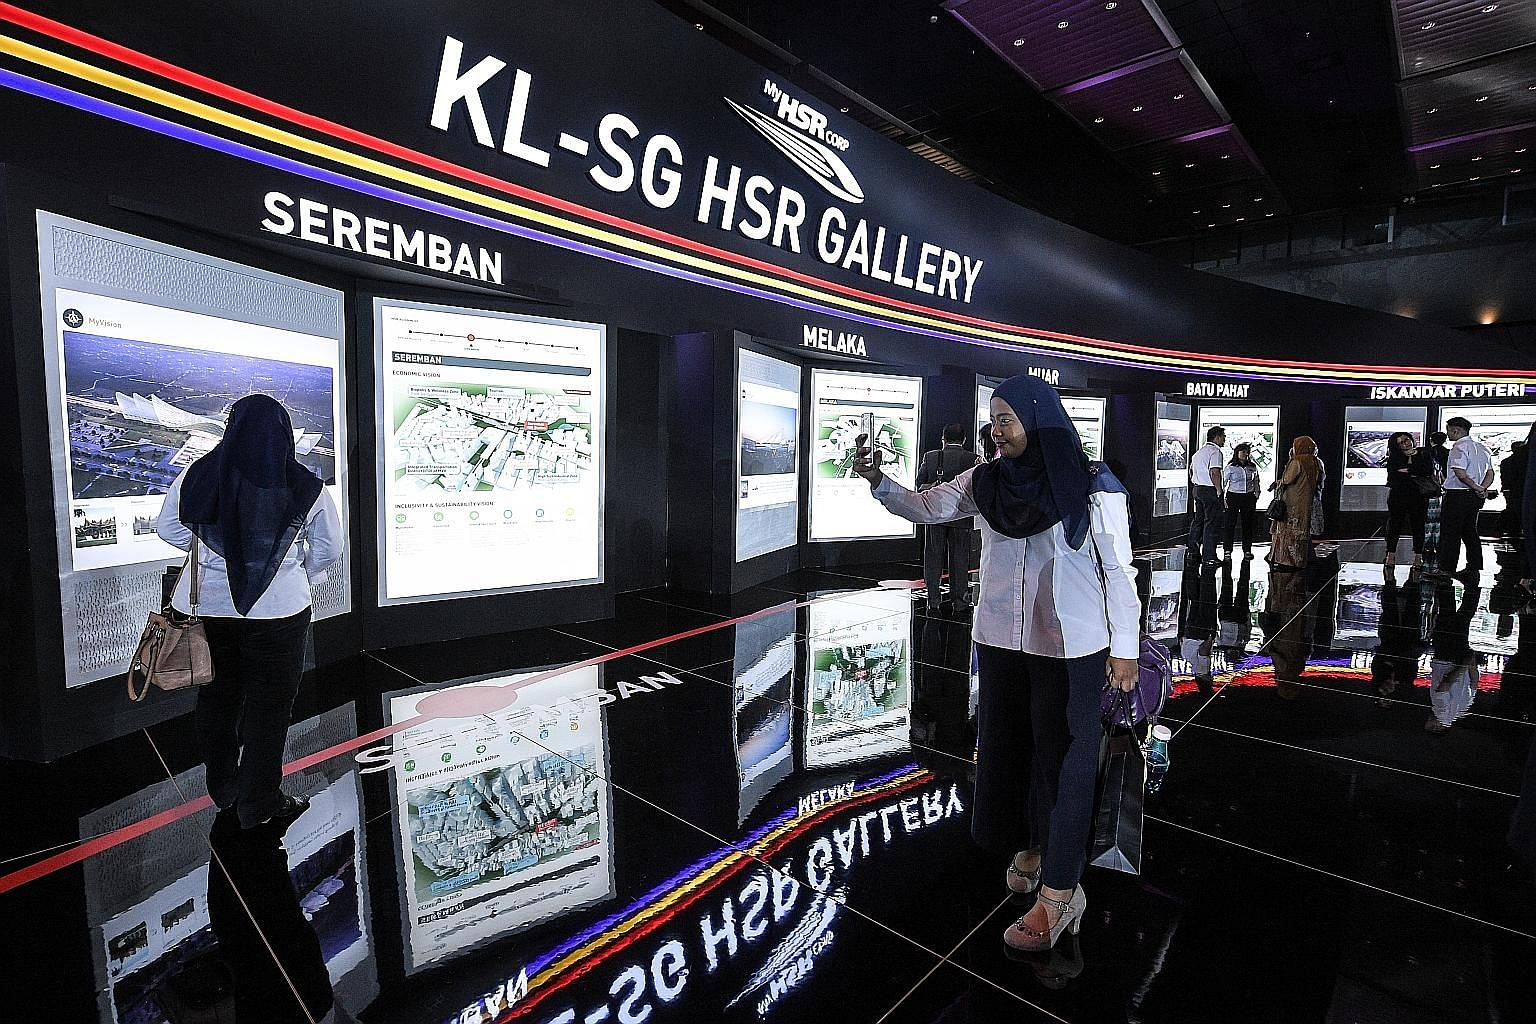 Visitors at an exhibition in Kuala Lumpur last year on the KL-Singapore High-Speed Rail. According to a source, Malaysia and Singapore are studying how long the project should be shelved for, before returning to the discussion table.